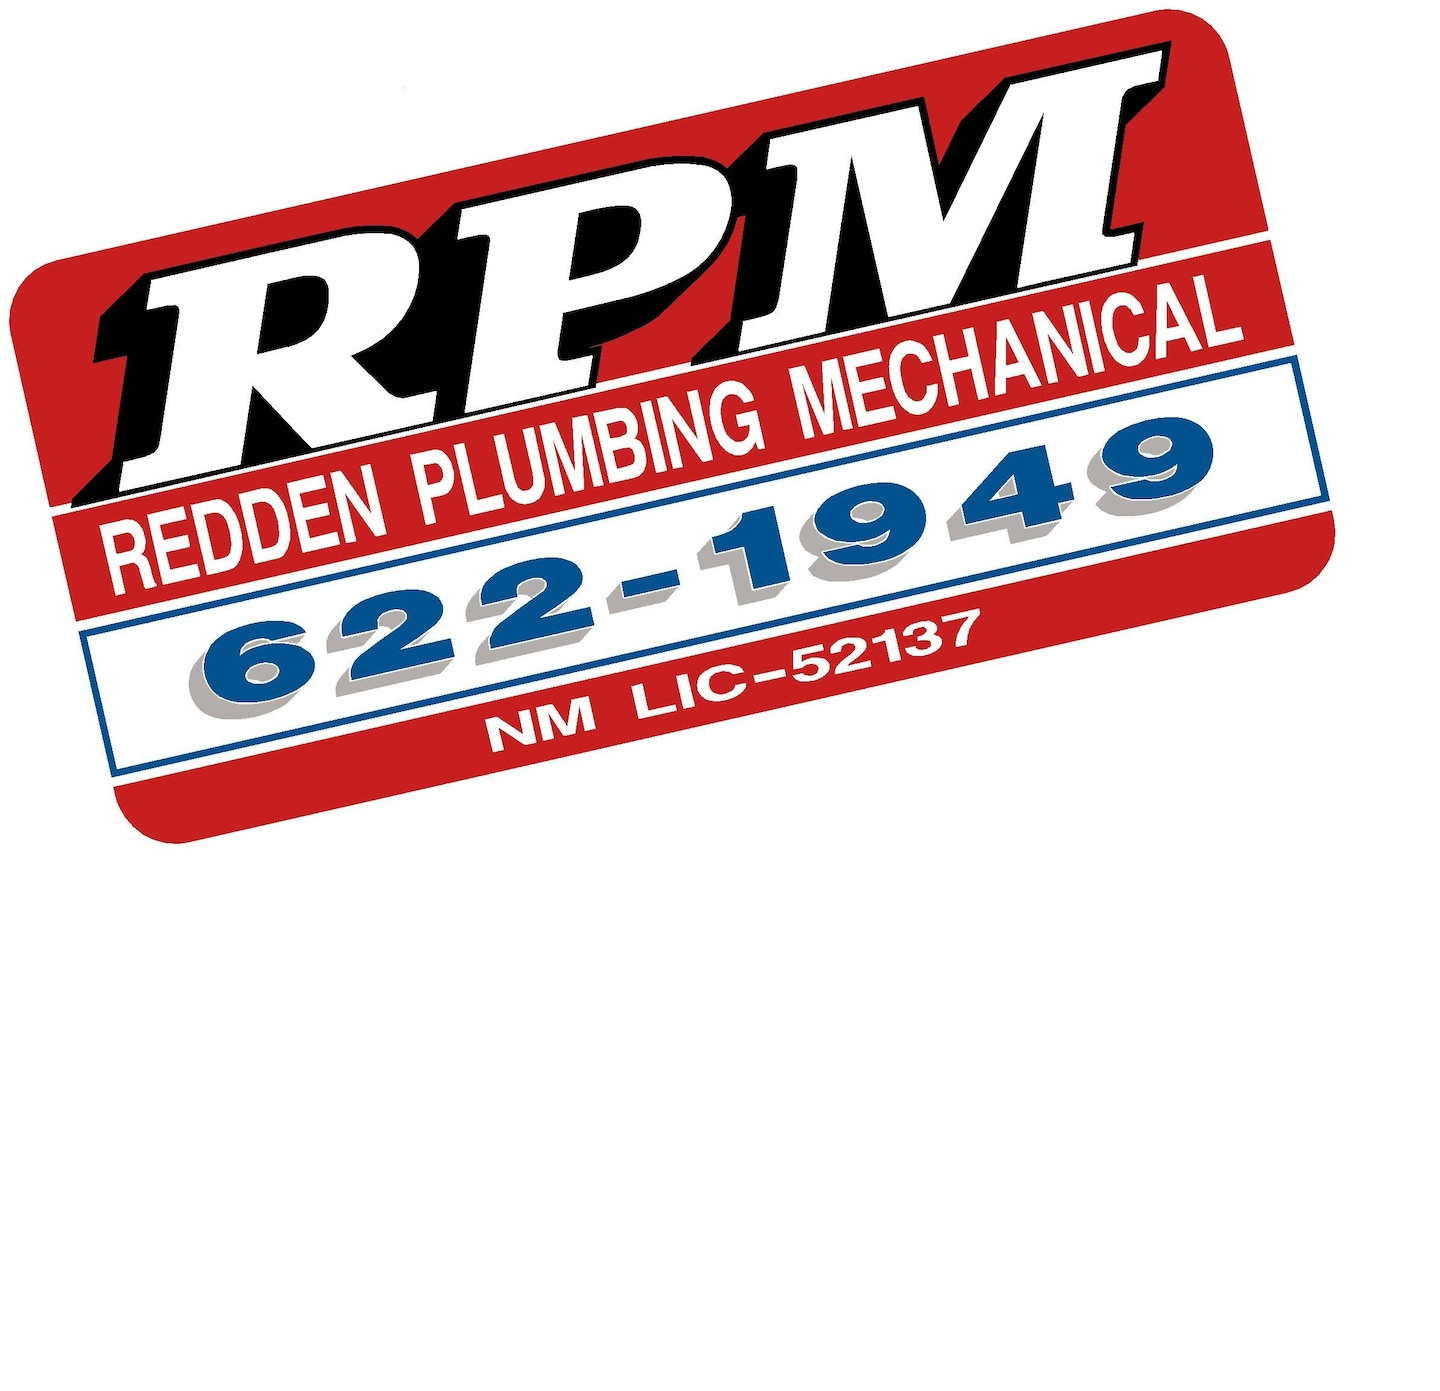 Redden Plumbing and Mechanical